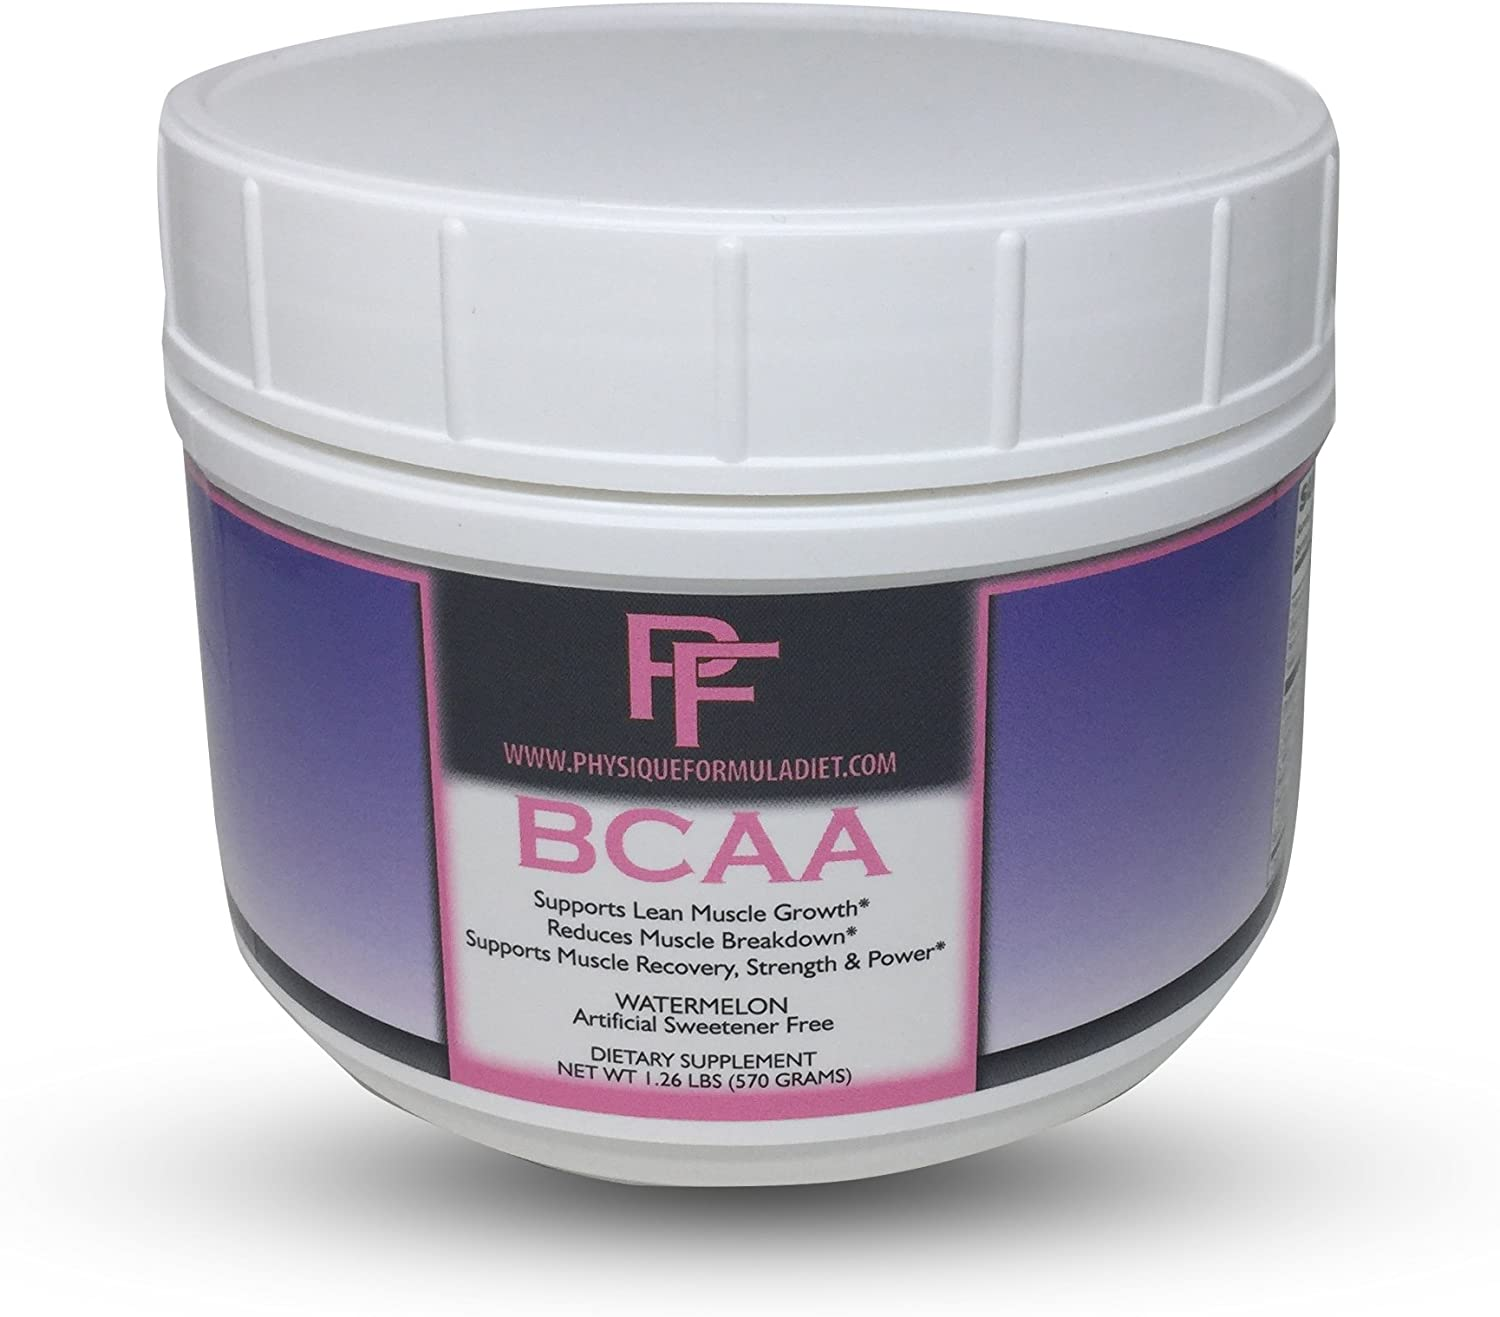 Physique Formula BCAA Powder-Artificial Sweetener Free Branched Chain Amino Acids Powder Watermelon Flavor 1.26 Lbs 30 servings